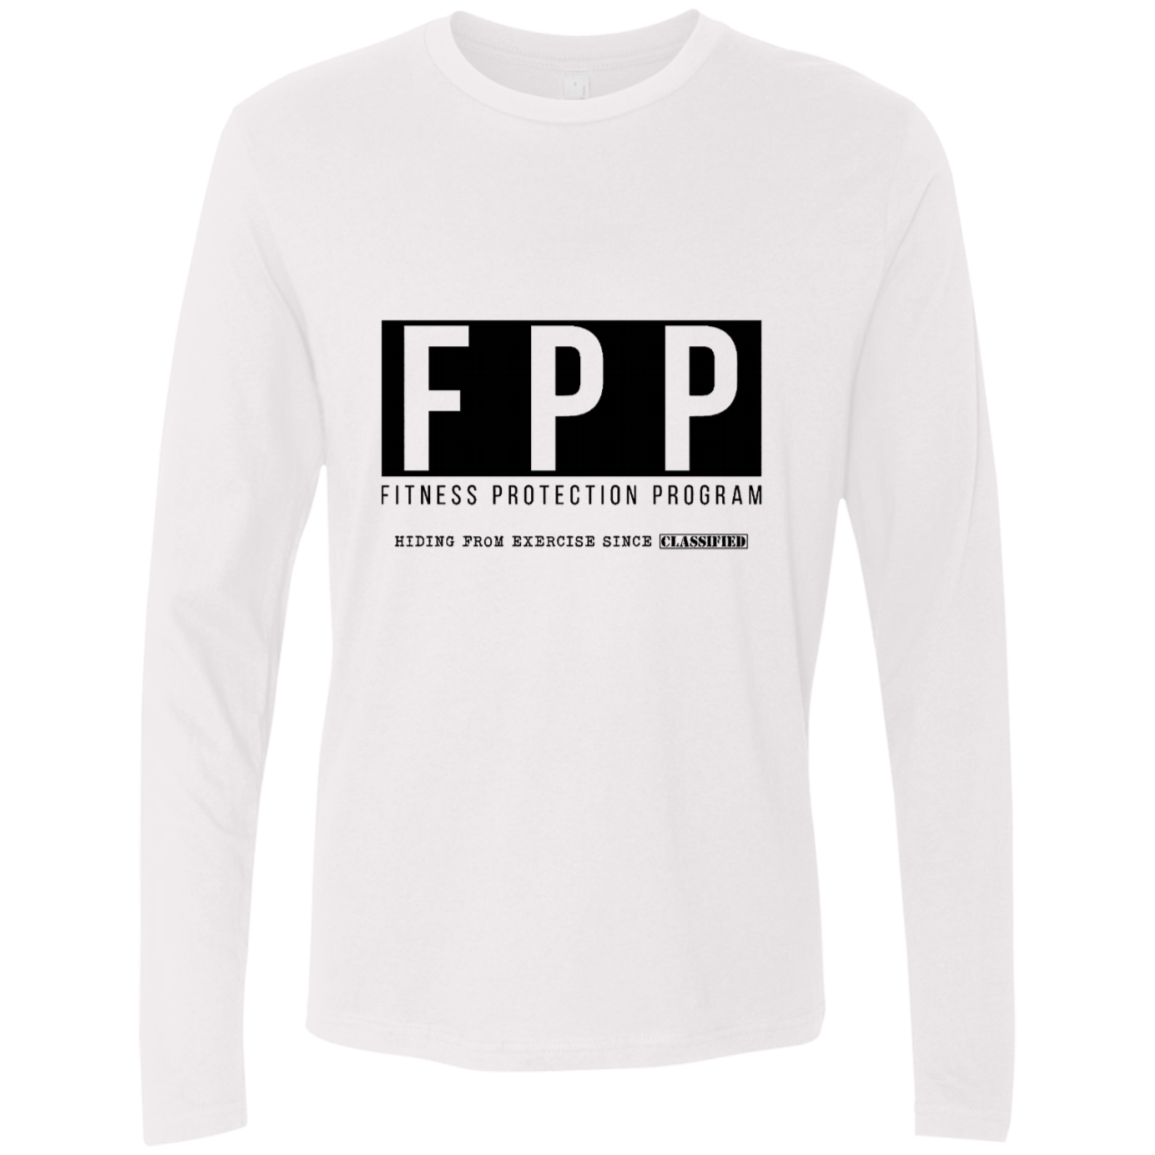 FPP Fitness Protection Program Hiding From Exercise Since Classified Men's Long Sleeve Tee